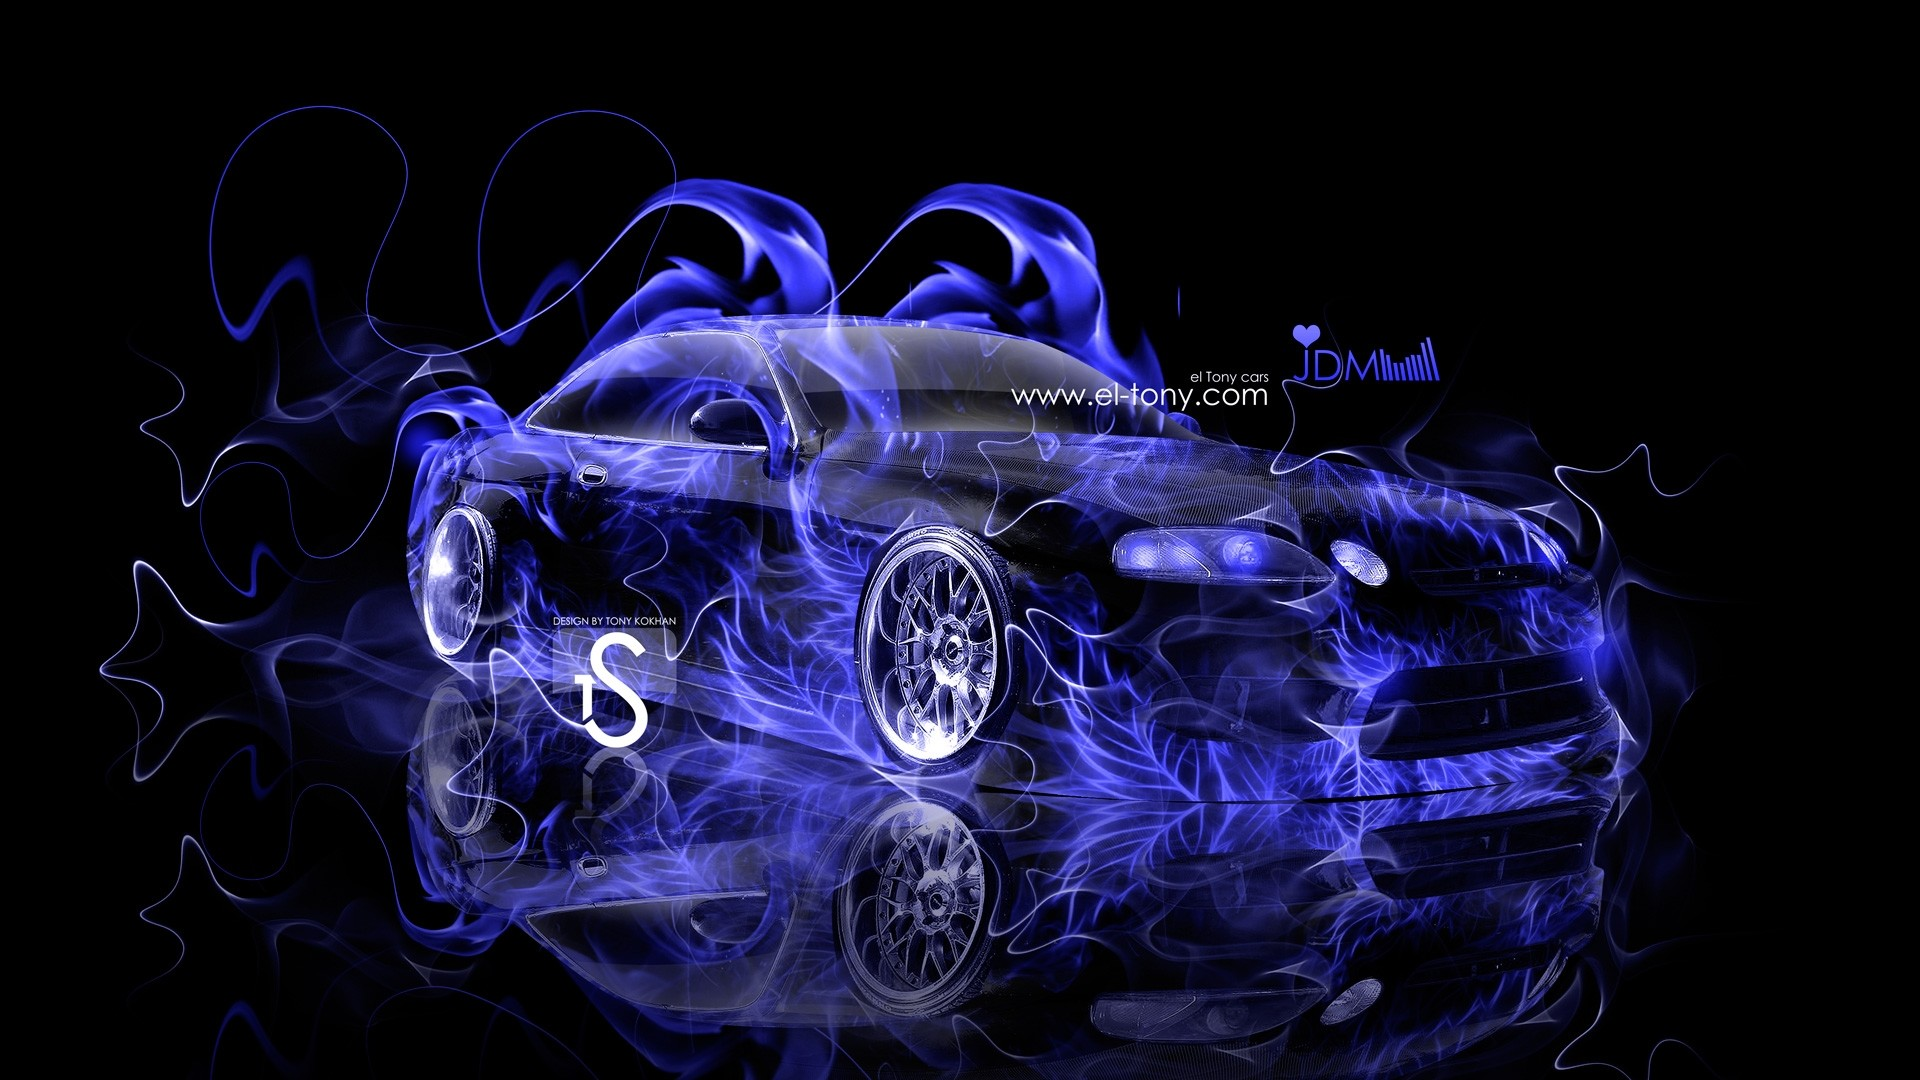 Res: 1920x1080, 2014 dodge charger blue fire vrroooomm pinterest skull wallpaper 2014 dodge  charger and dodge charger